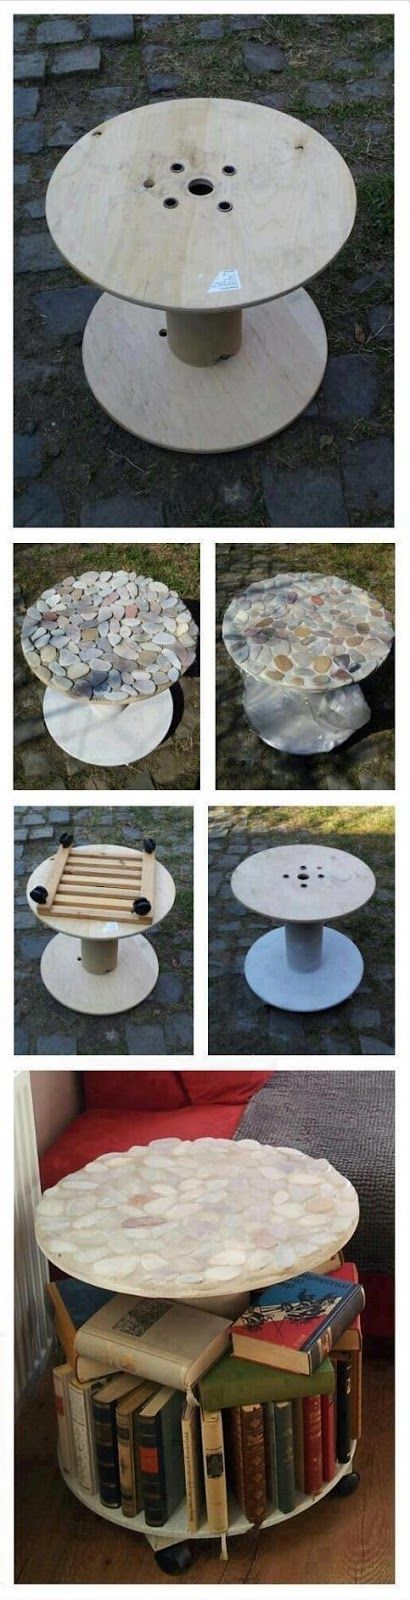 Wonderful DIY Table By Recycling Spool (DIY Creative Ideas)